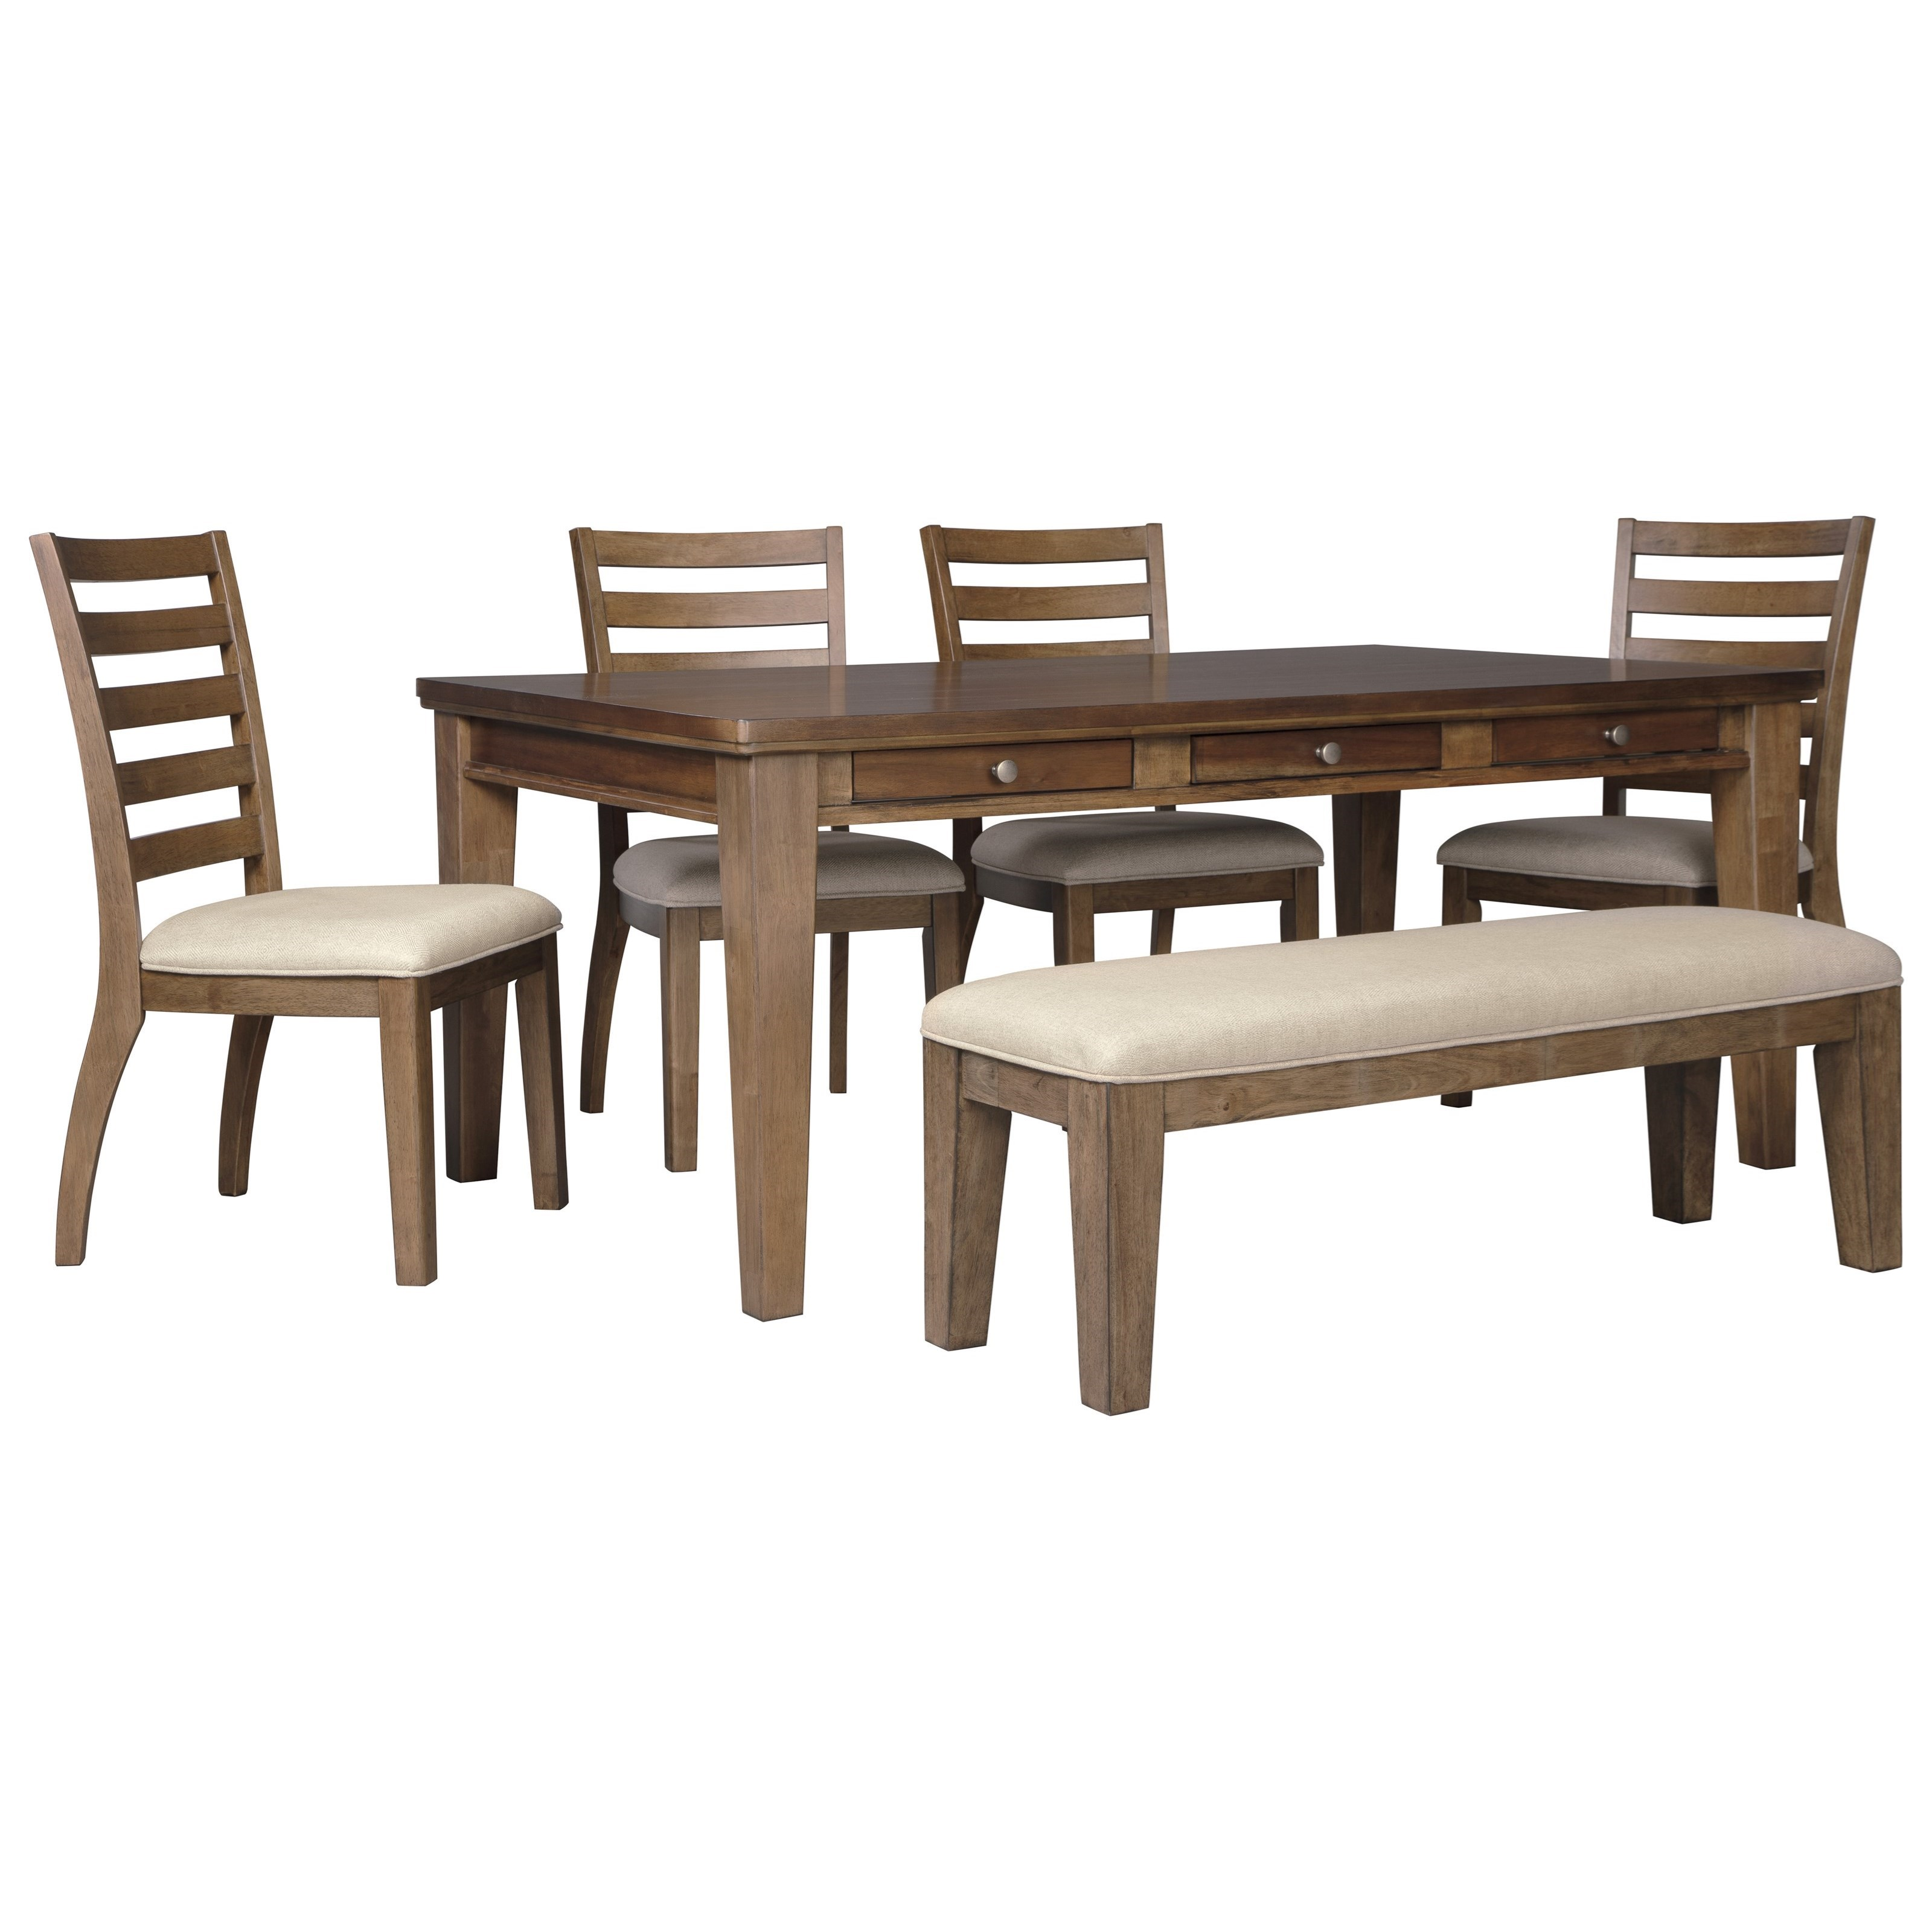 Flynnter 6 Piece Storage Table Set with Bench by Signature Design at Fisher Home Furnishings